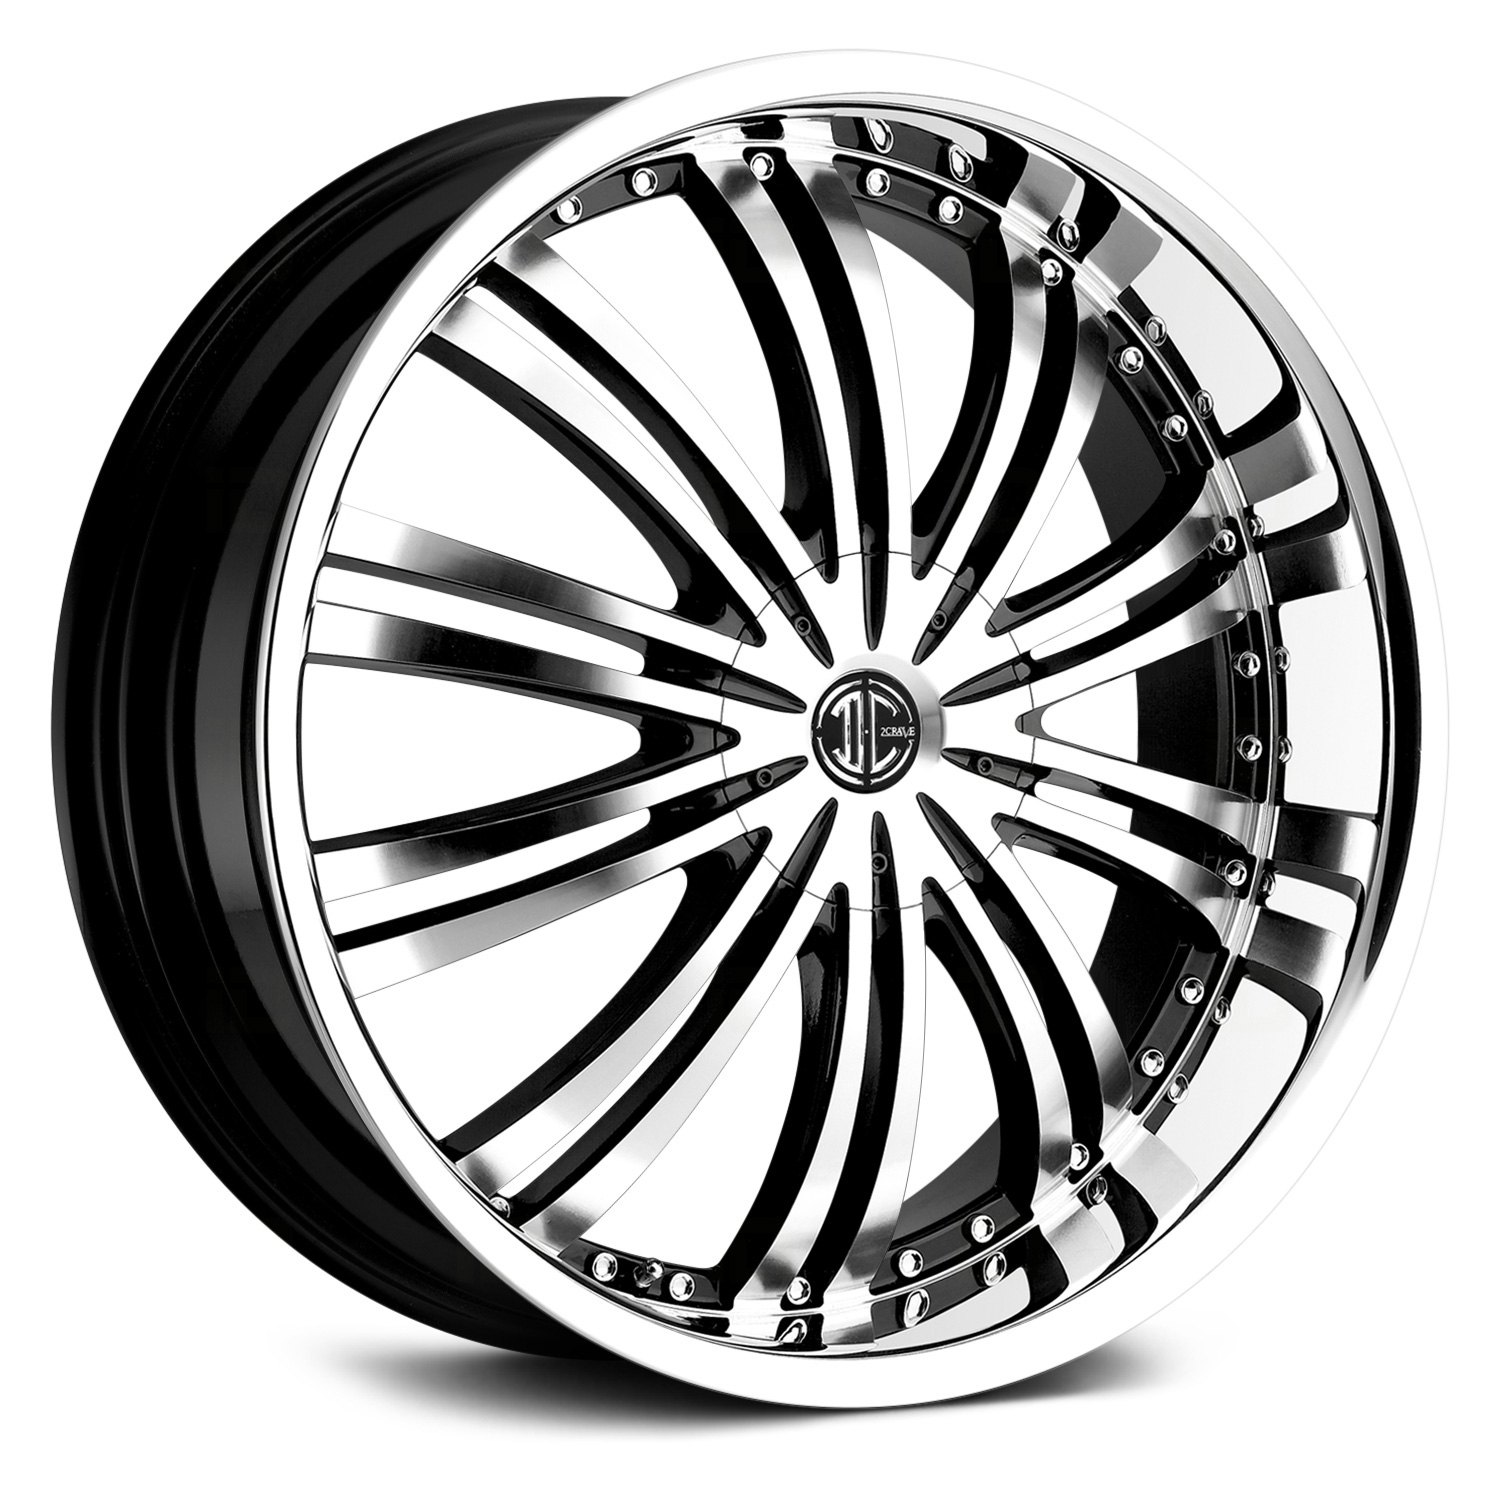 Chrome Rim Repair >> 2 CRAVE® NUMBER 1 Wheels - Gloss Black with Machined Face and Chrome Lip Rims